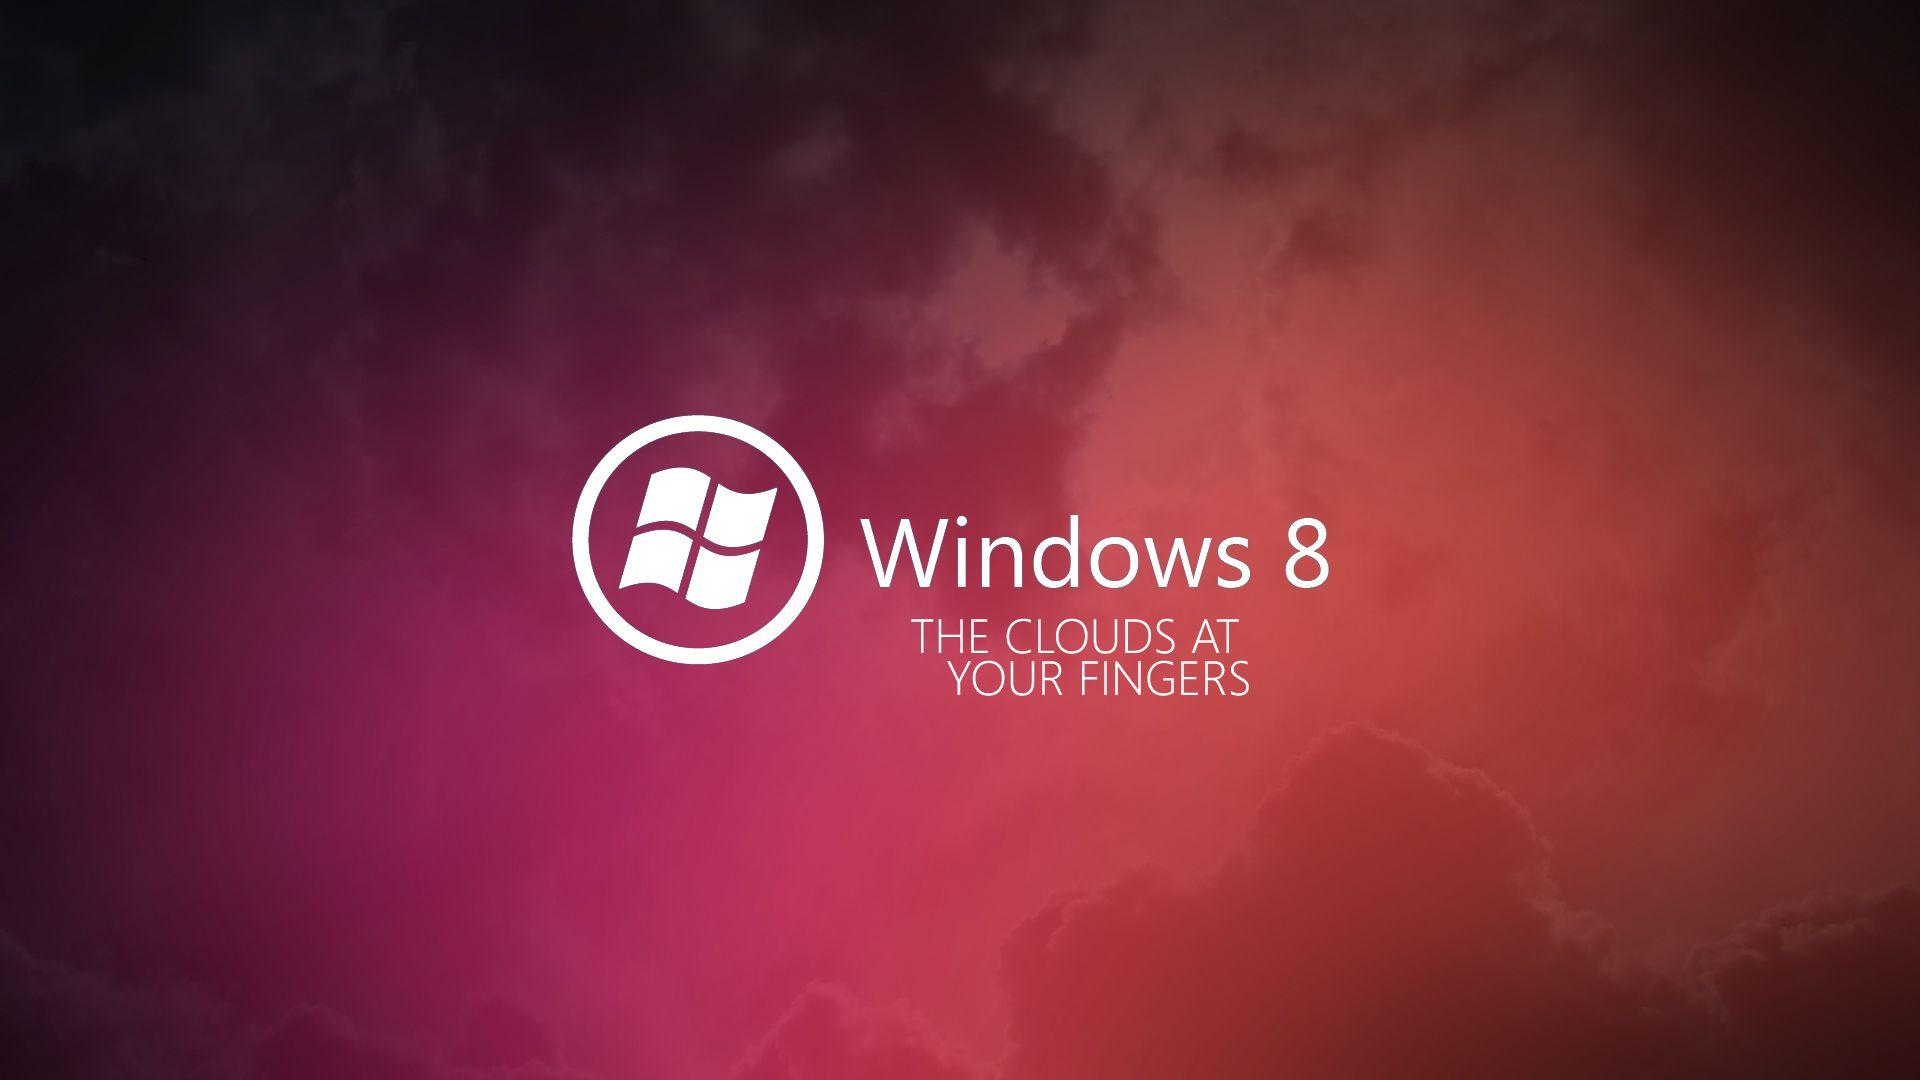 Windows 8 wallpapers hd 3d for desktop